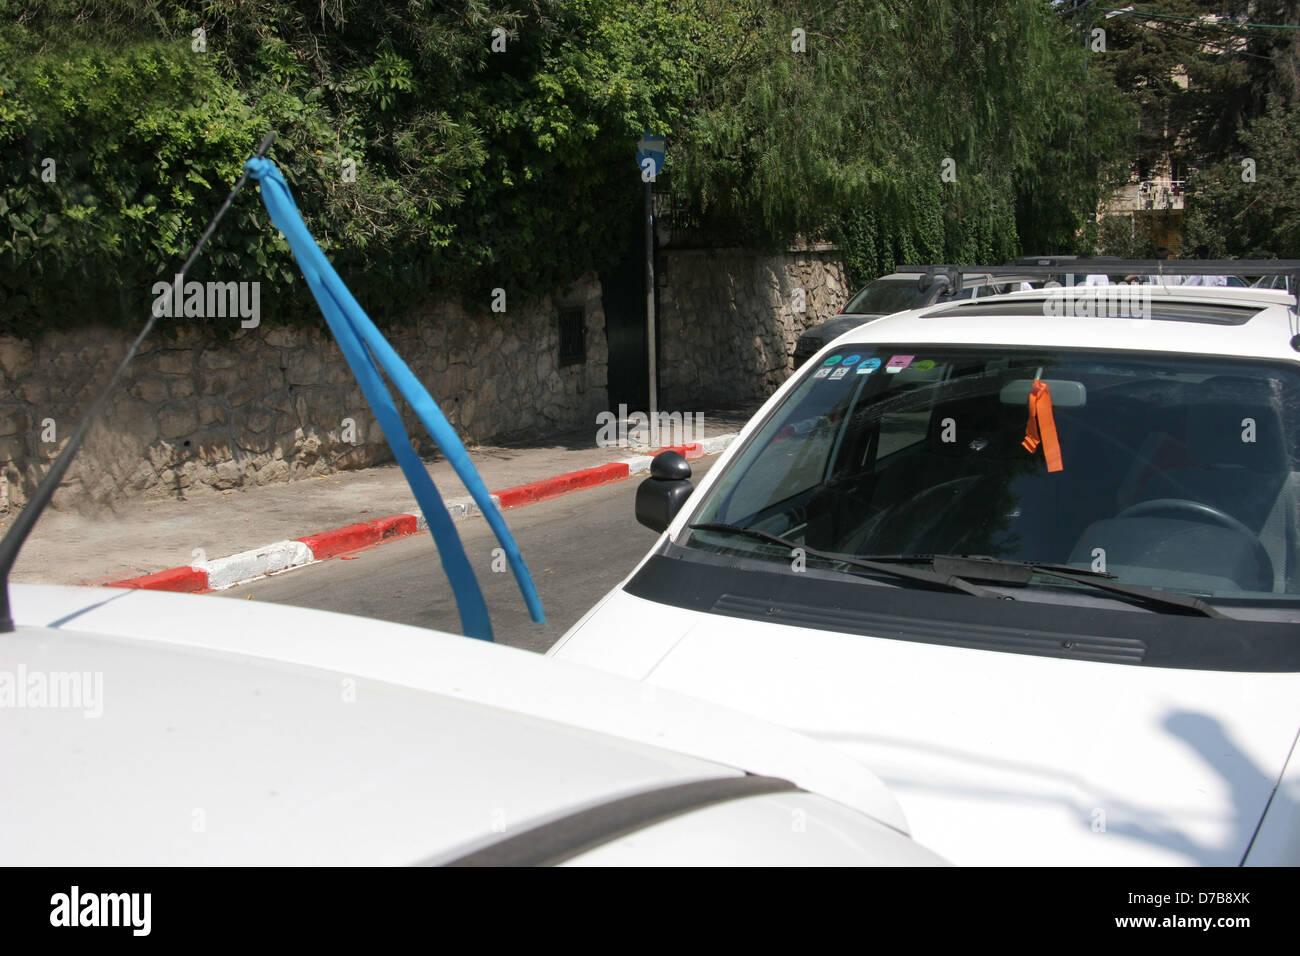 blue and orange ribbons attached to cars in support and in opposition to gush katif disengagement (July 2005) - Stock Image